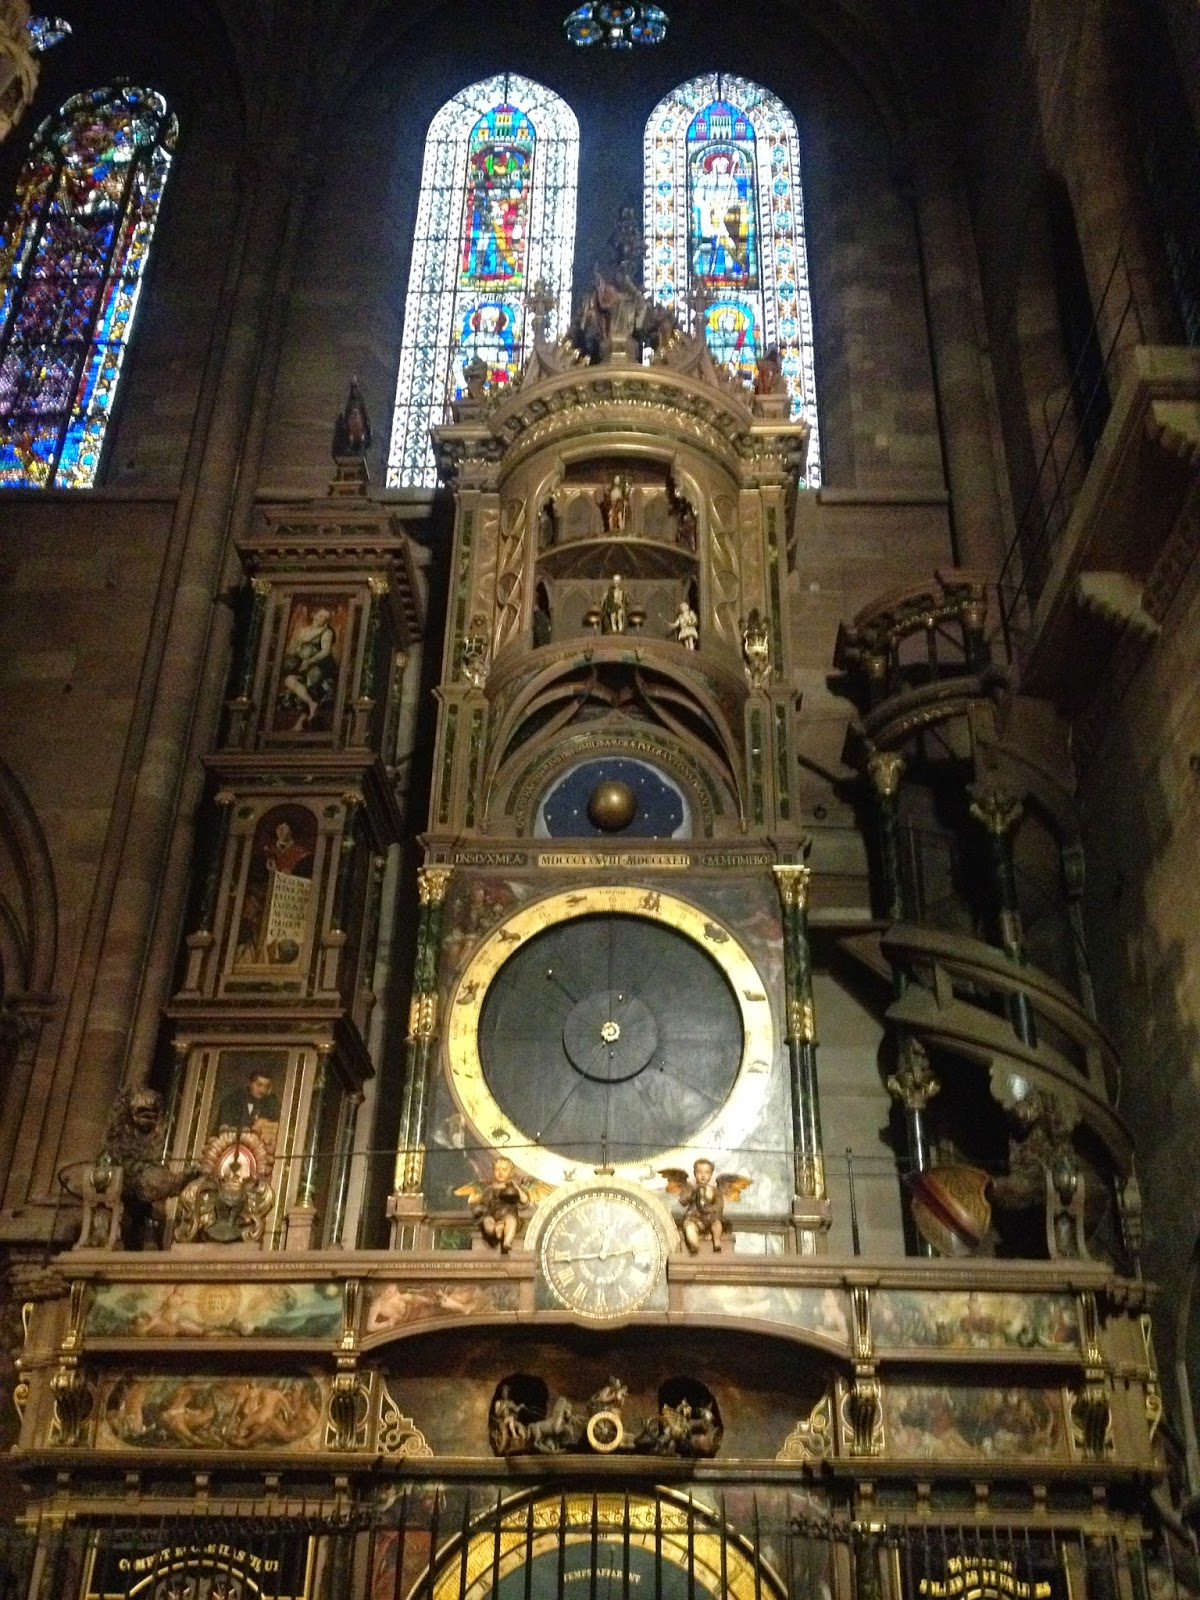 Astronomical clock in the Strasbourg Cathedral